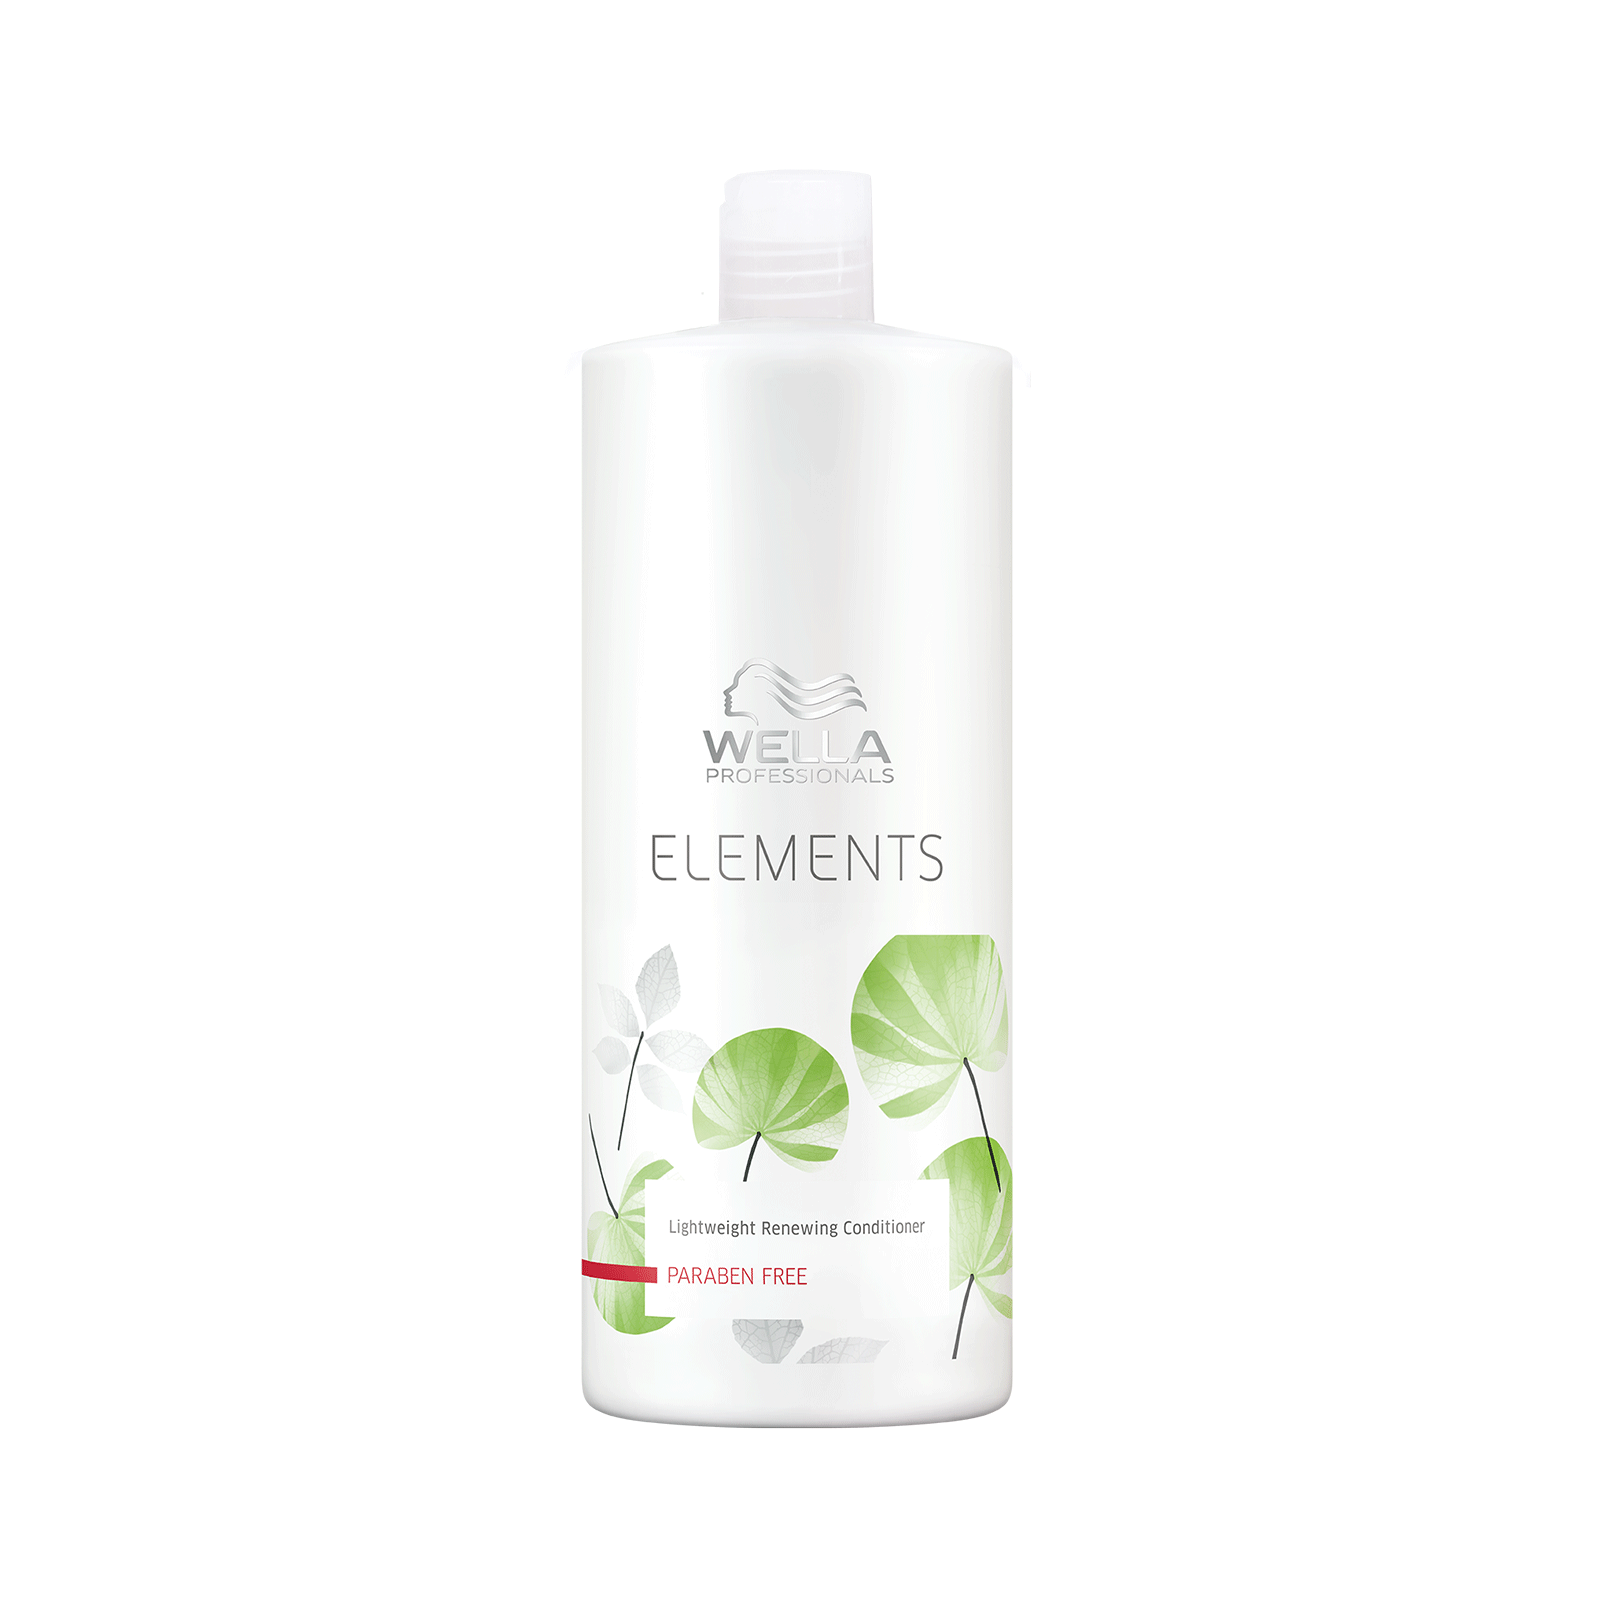 Lightweight Renewing Conditioner